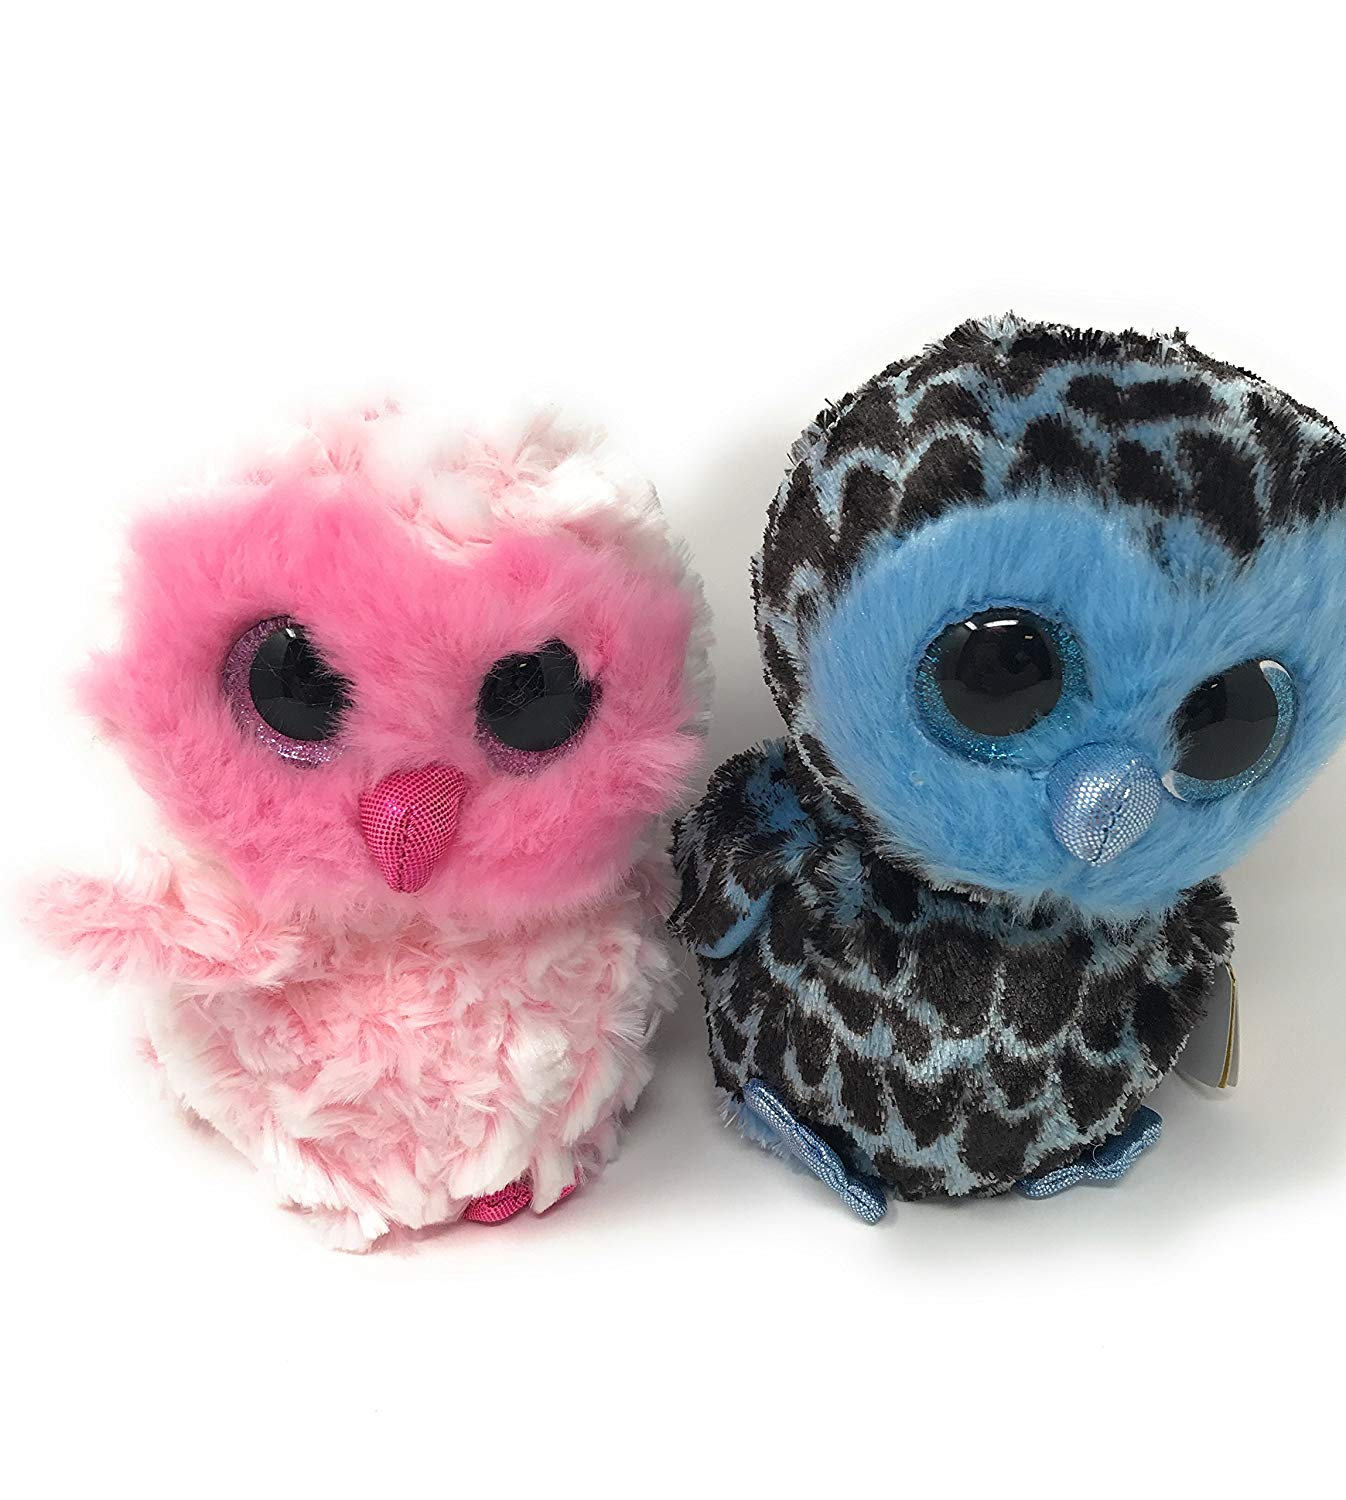 c3bb7cbd5d8 Get Quotations · TY beanie boos set of 2